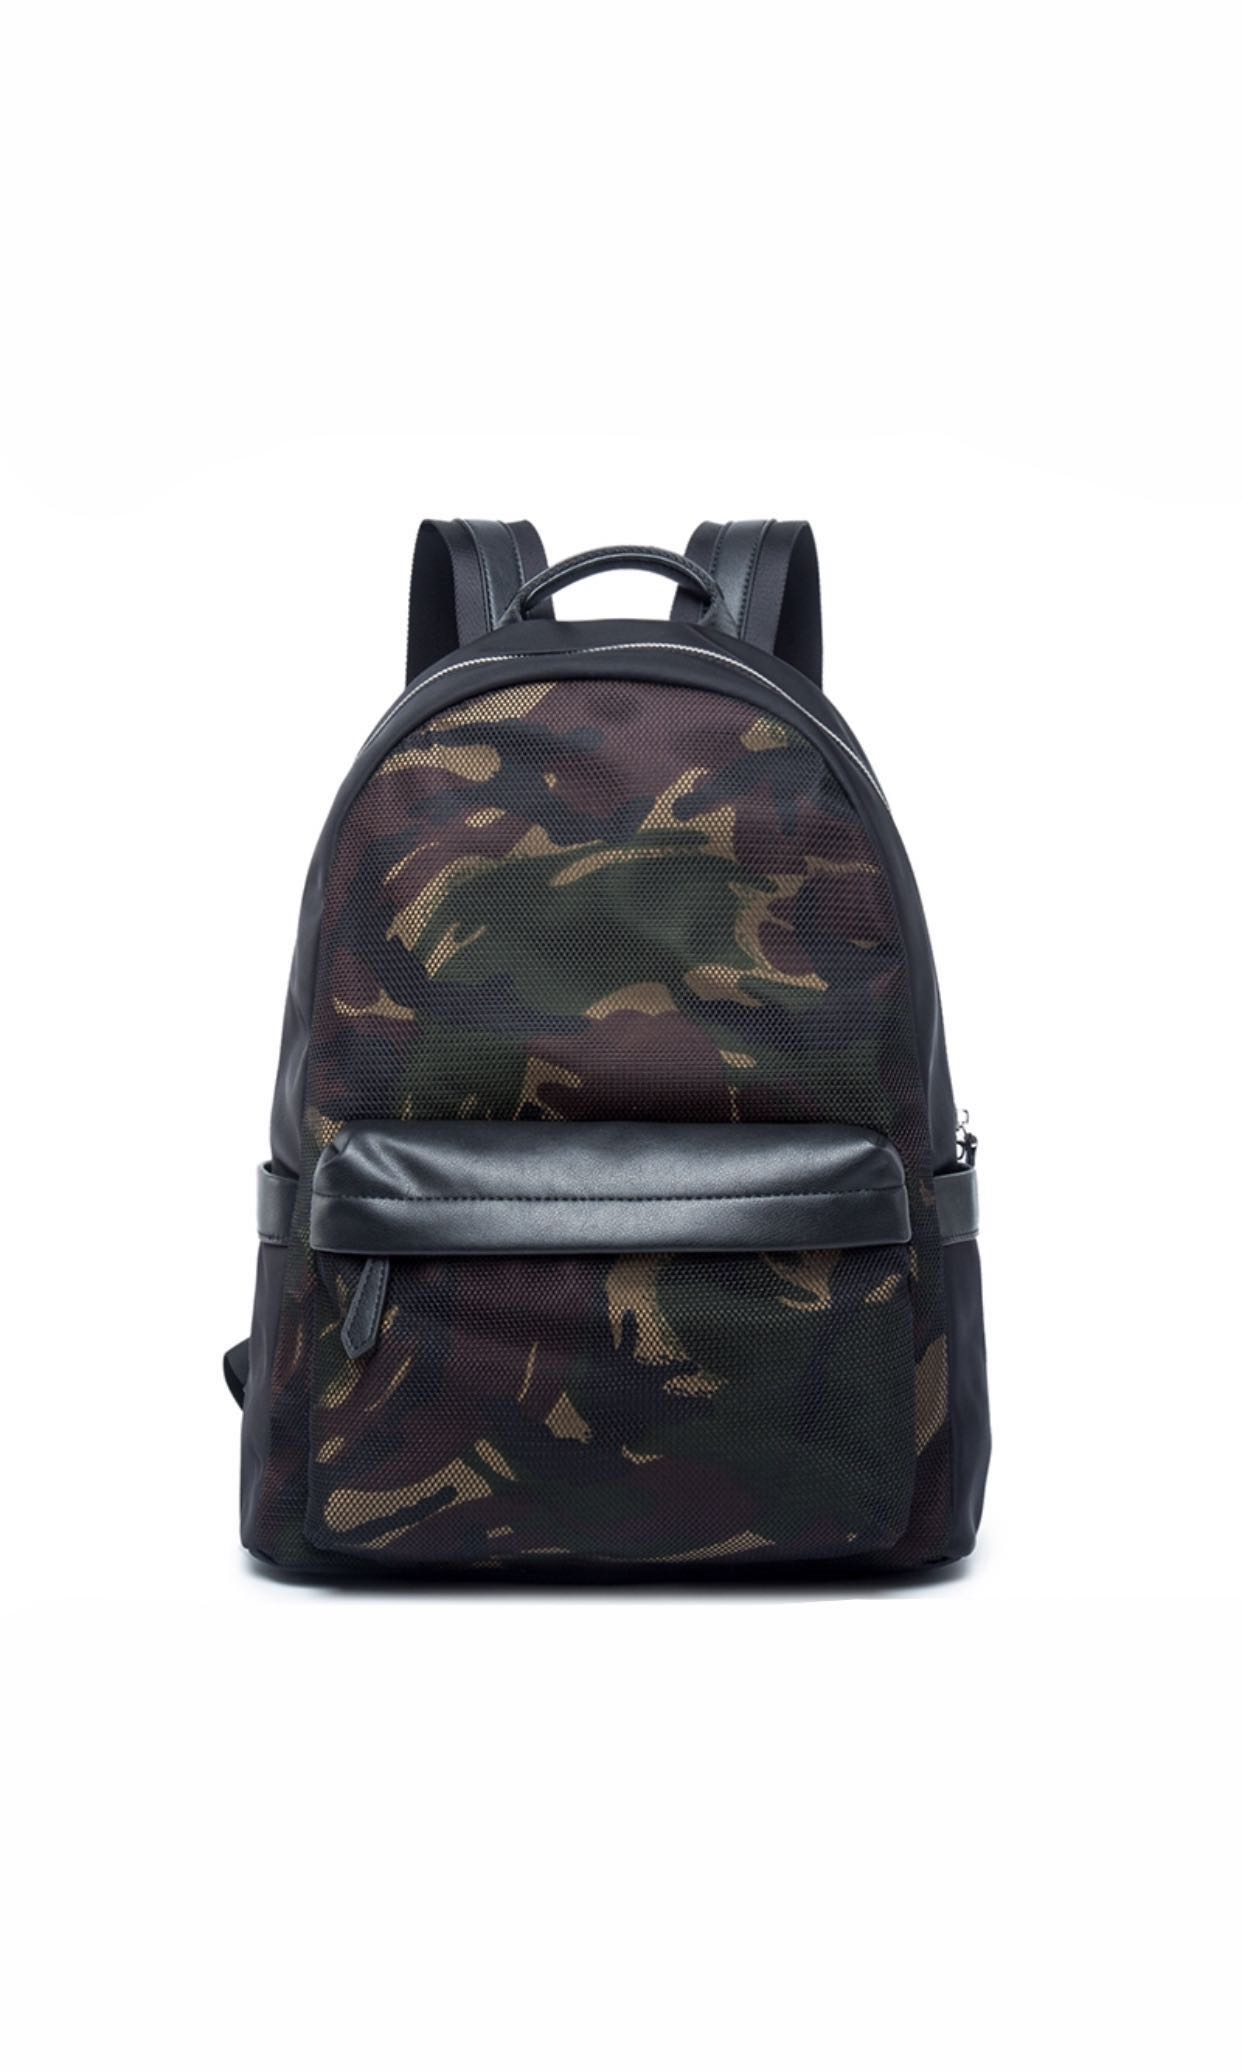 b09d6bf34b INSTOCK! Stylish camo backpack - laptop backpack - travel backpack ...